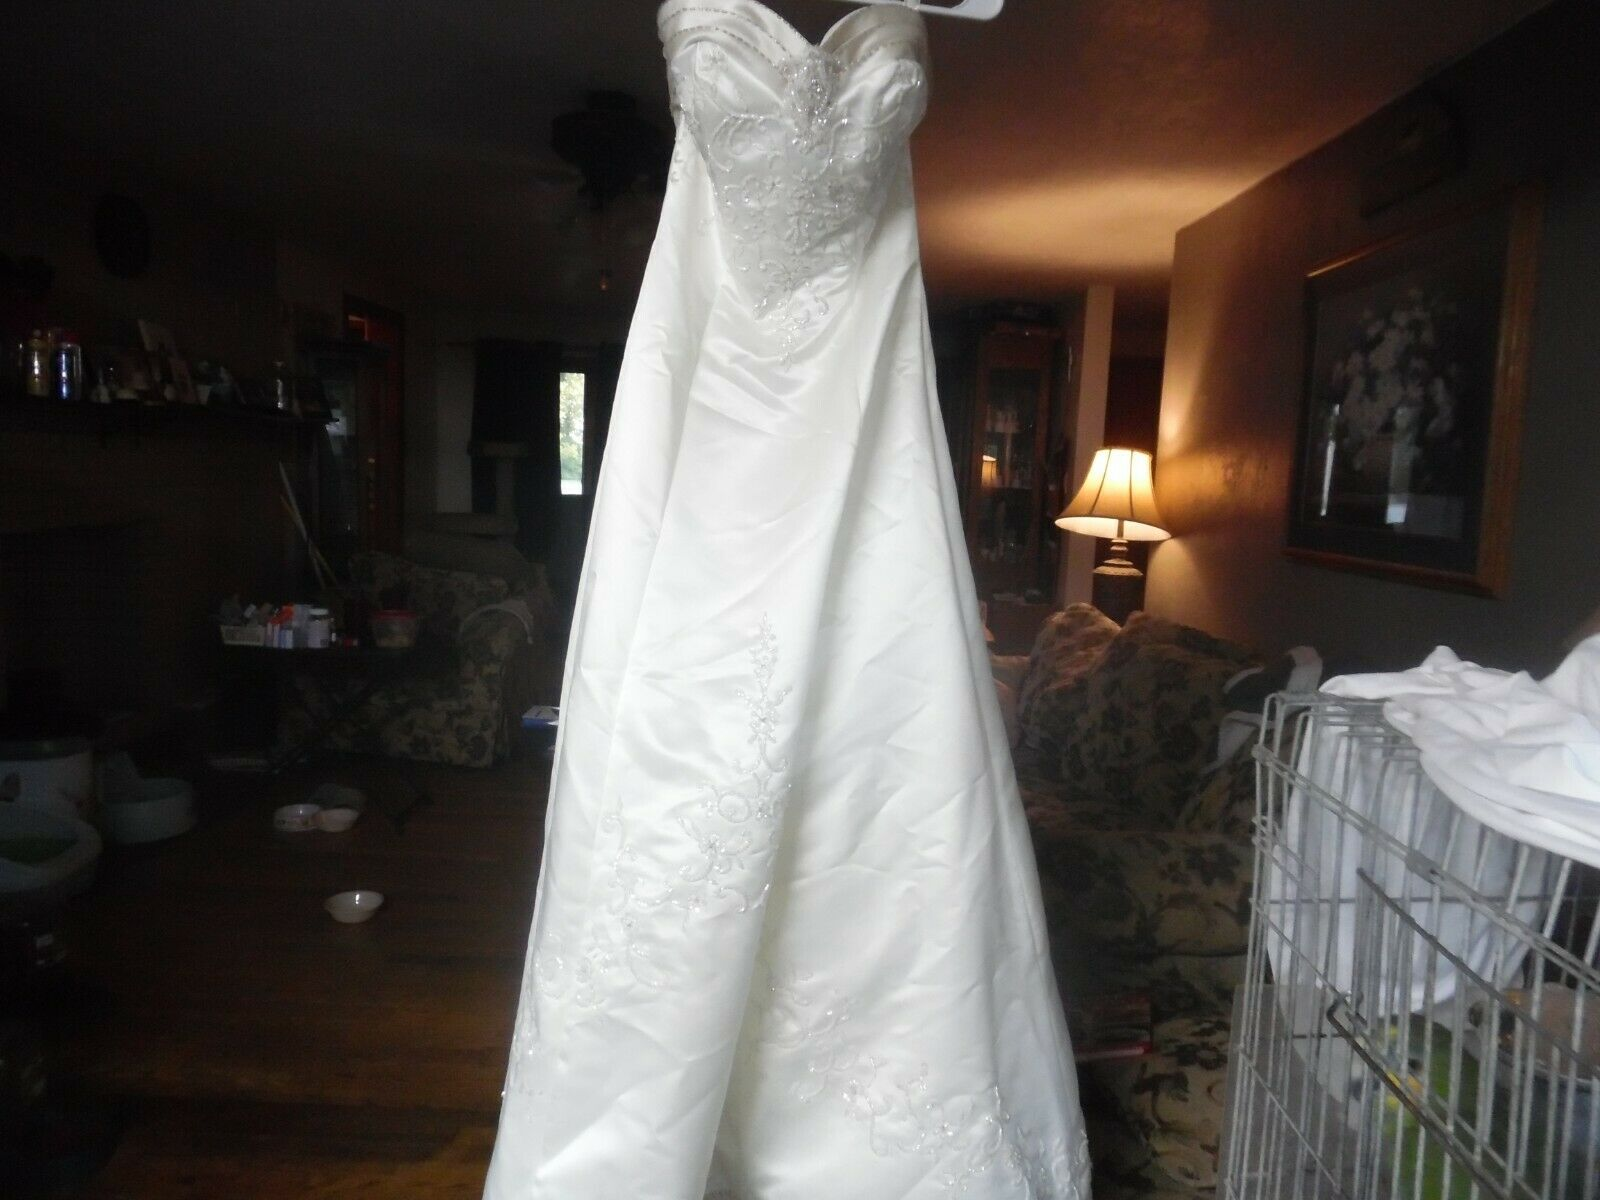 Private Collection Ivory & Mocha satin beaded size 8 wedding dress never worn